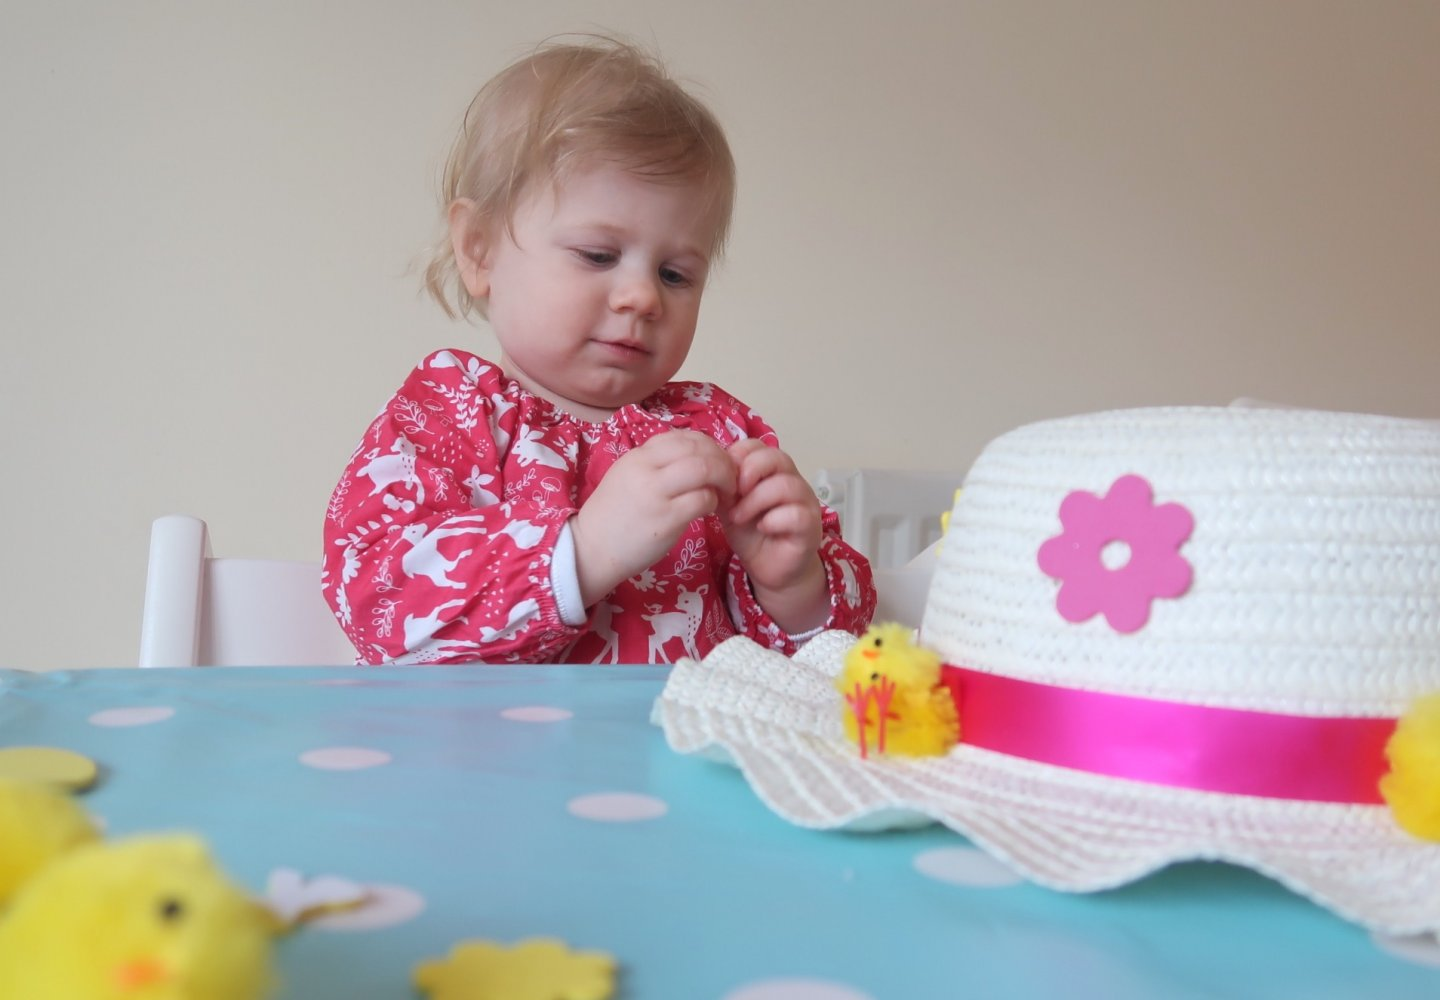 Development of fine motor skills through Easter bonnet making